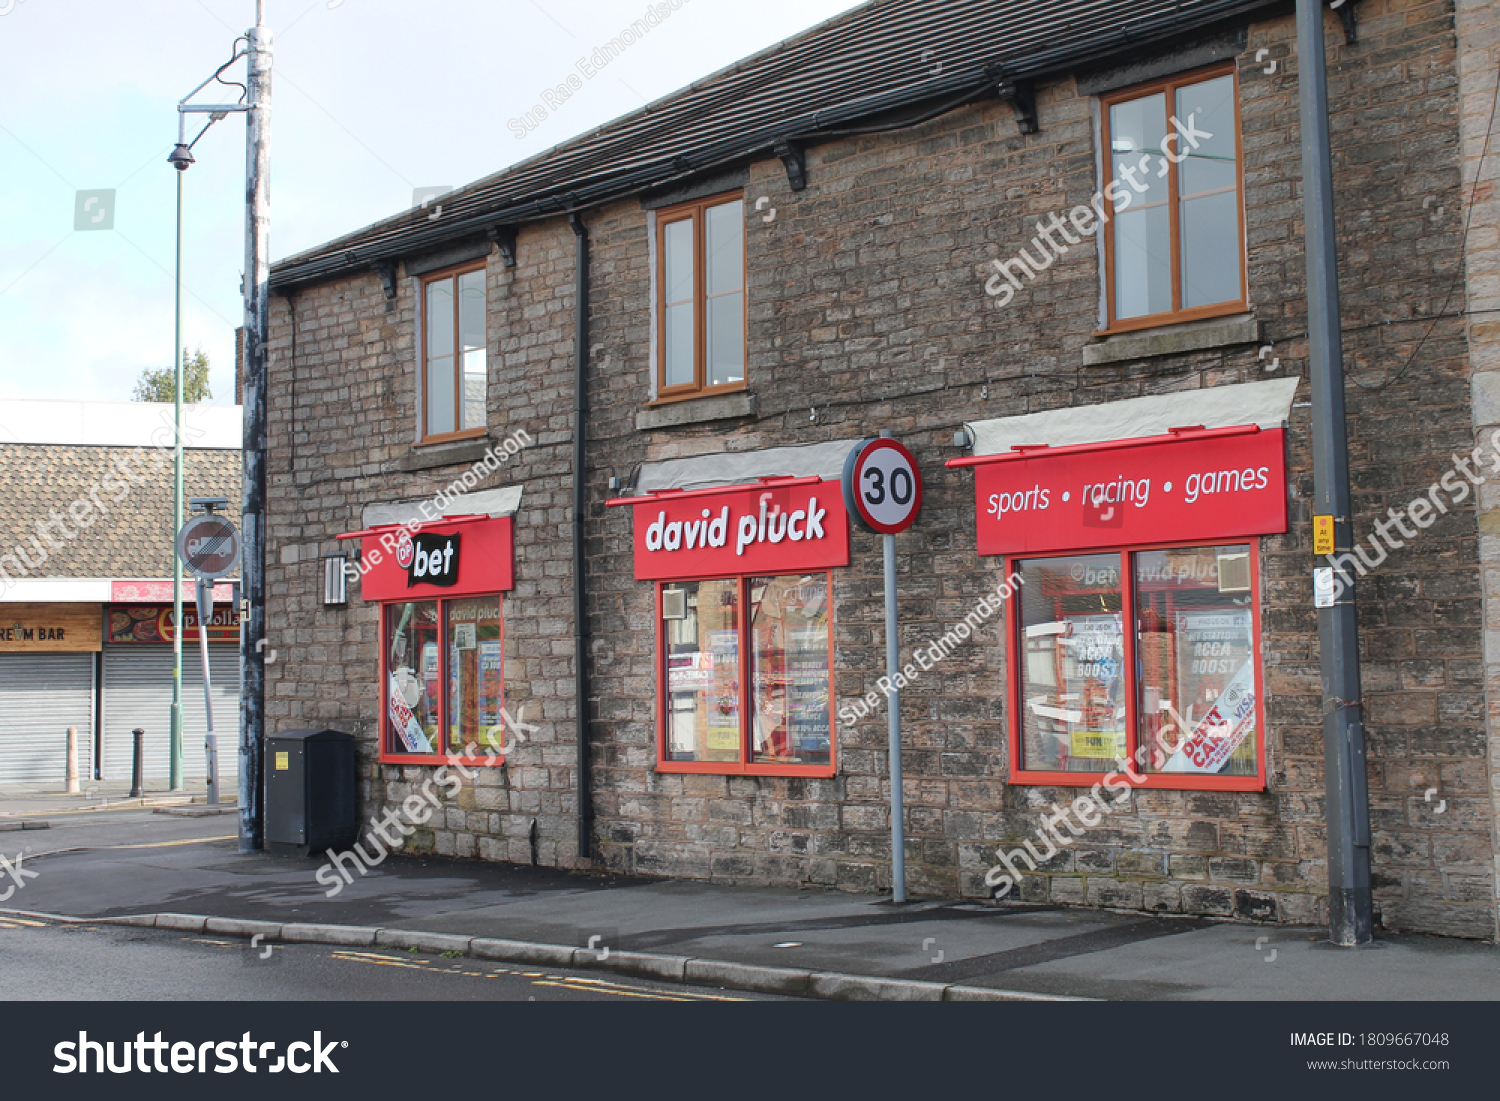 Upholland, Lancashire, UK, 06/09/2020 :  Exterior of David Pluck betting shop, north west independent bookmakers